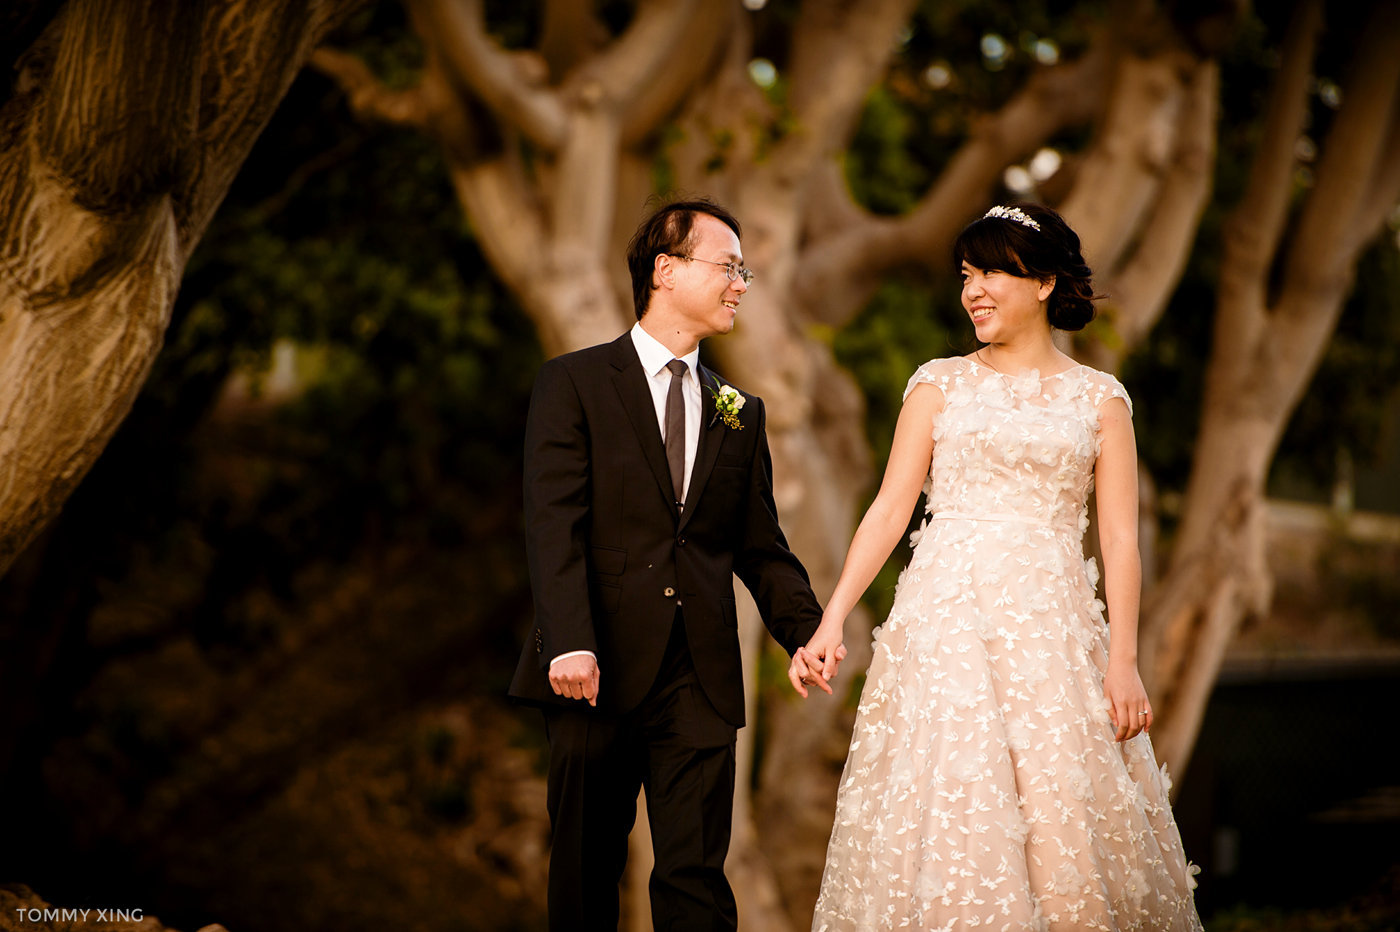 Qinglu Meng & Daozheng Chen Wedding Slideshow-195-E.JPG